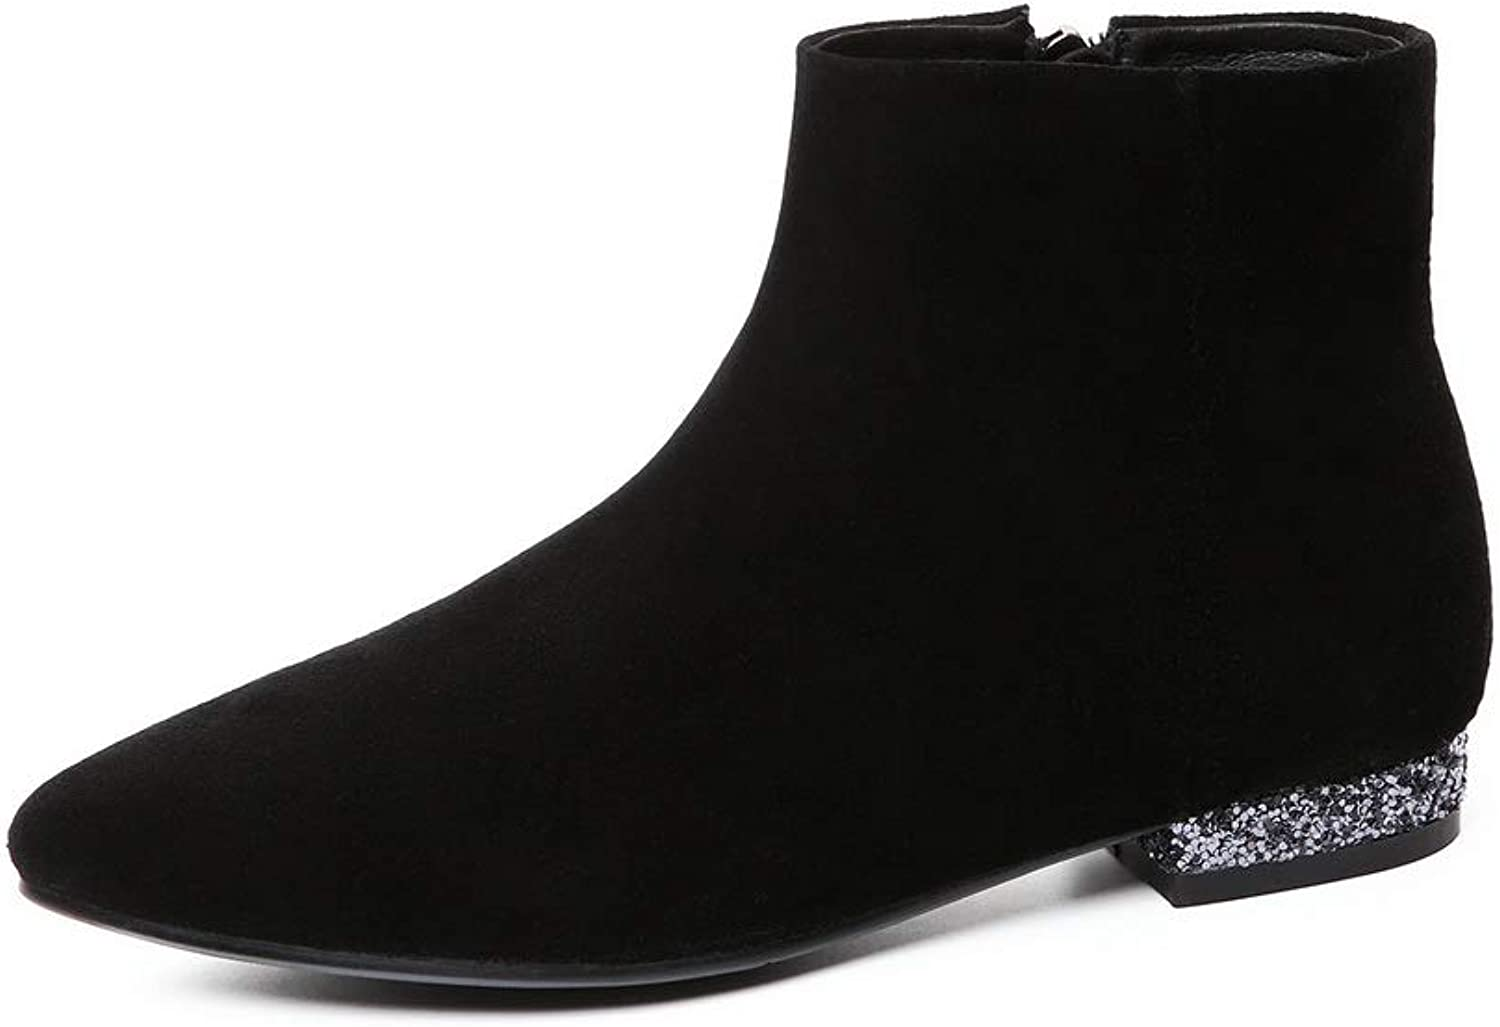 AN Womens Nubuck Warm Lining Solid Urethane Boots DKV02972